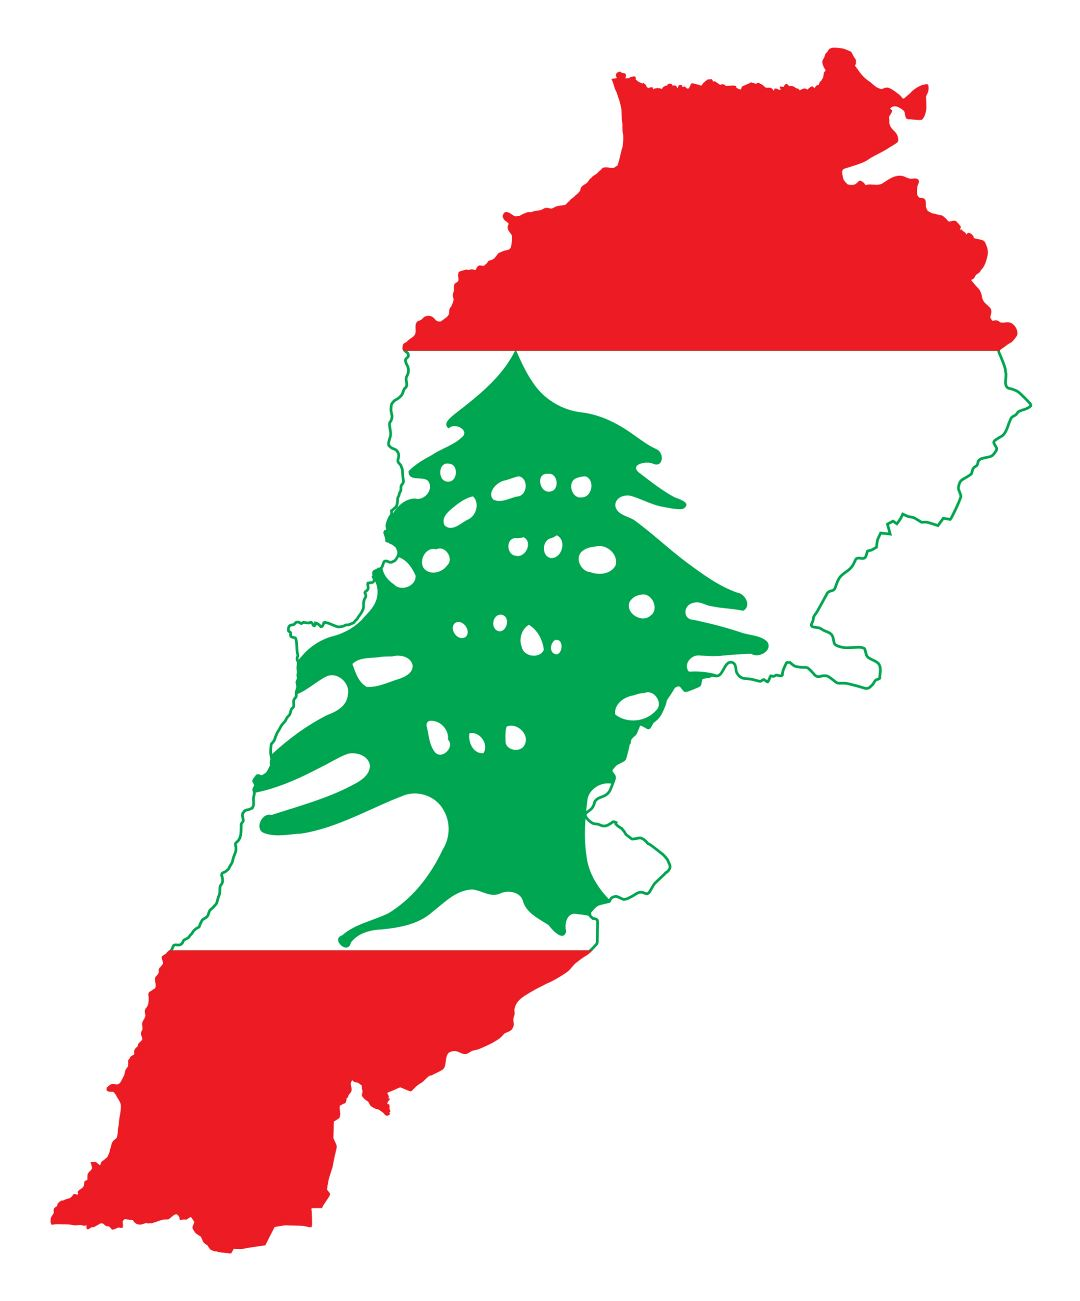 Large flag map of Lebanon